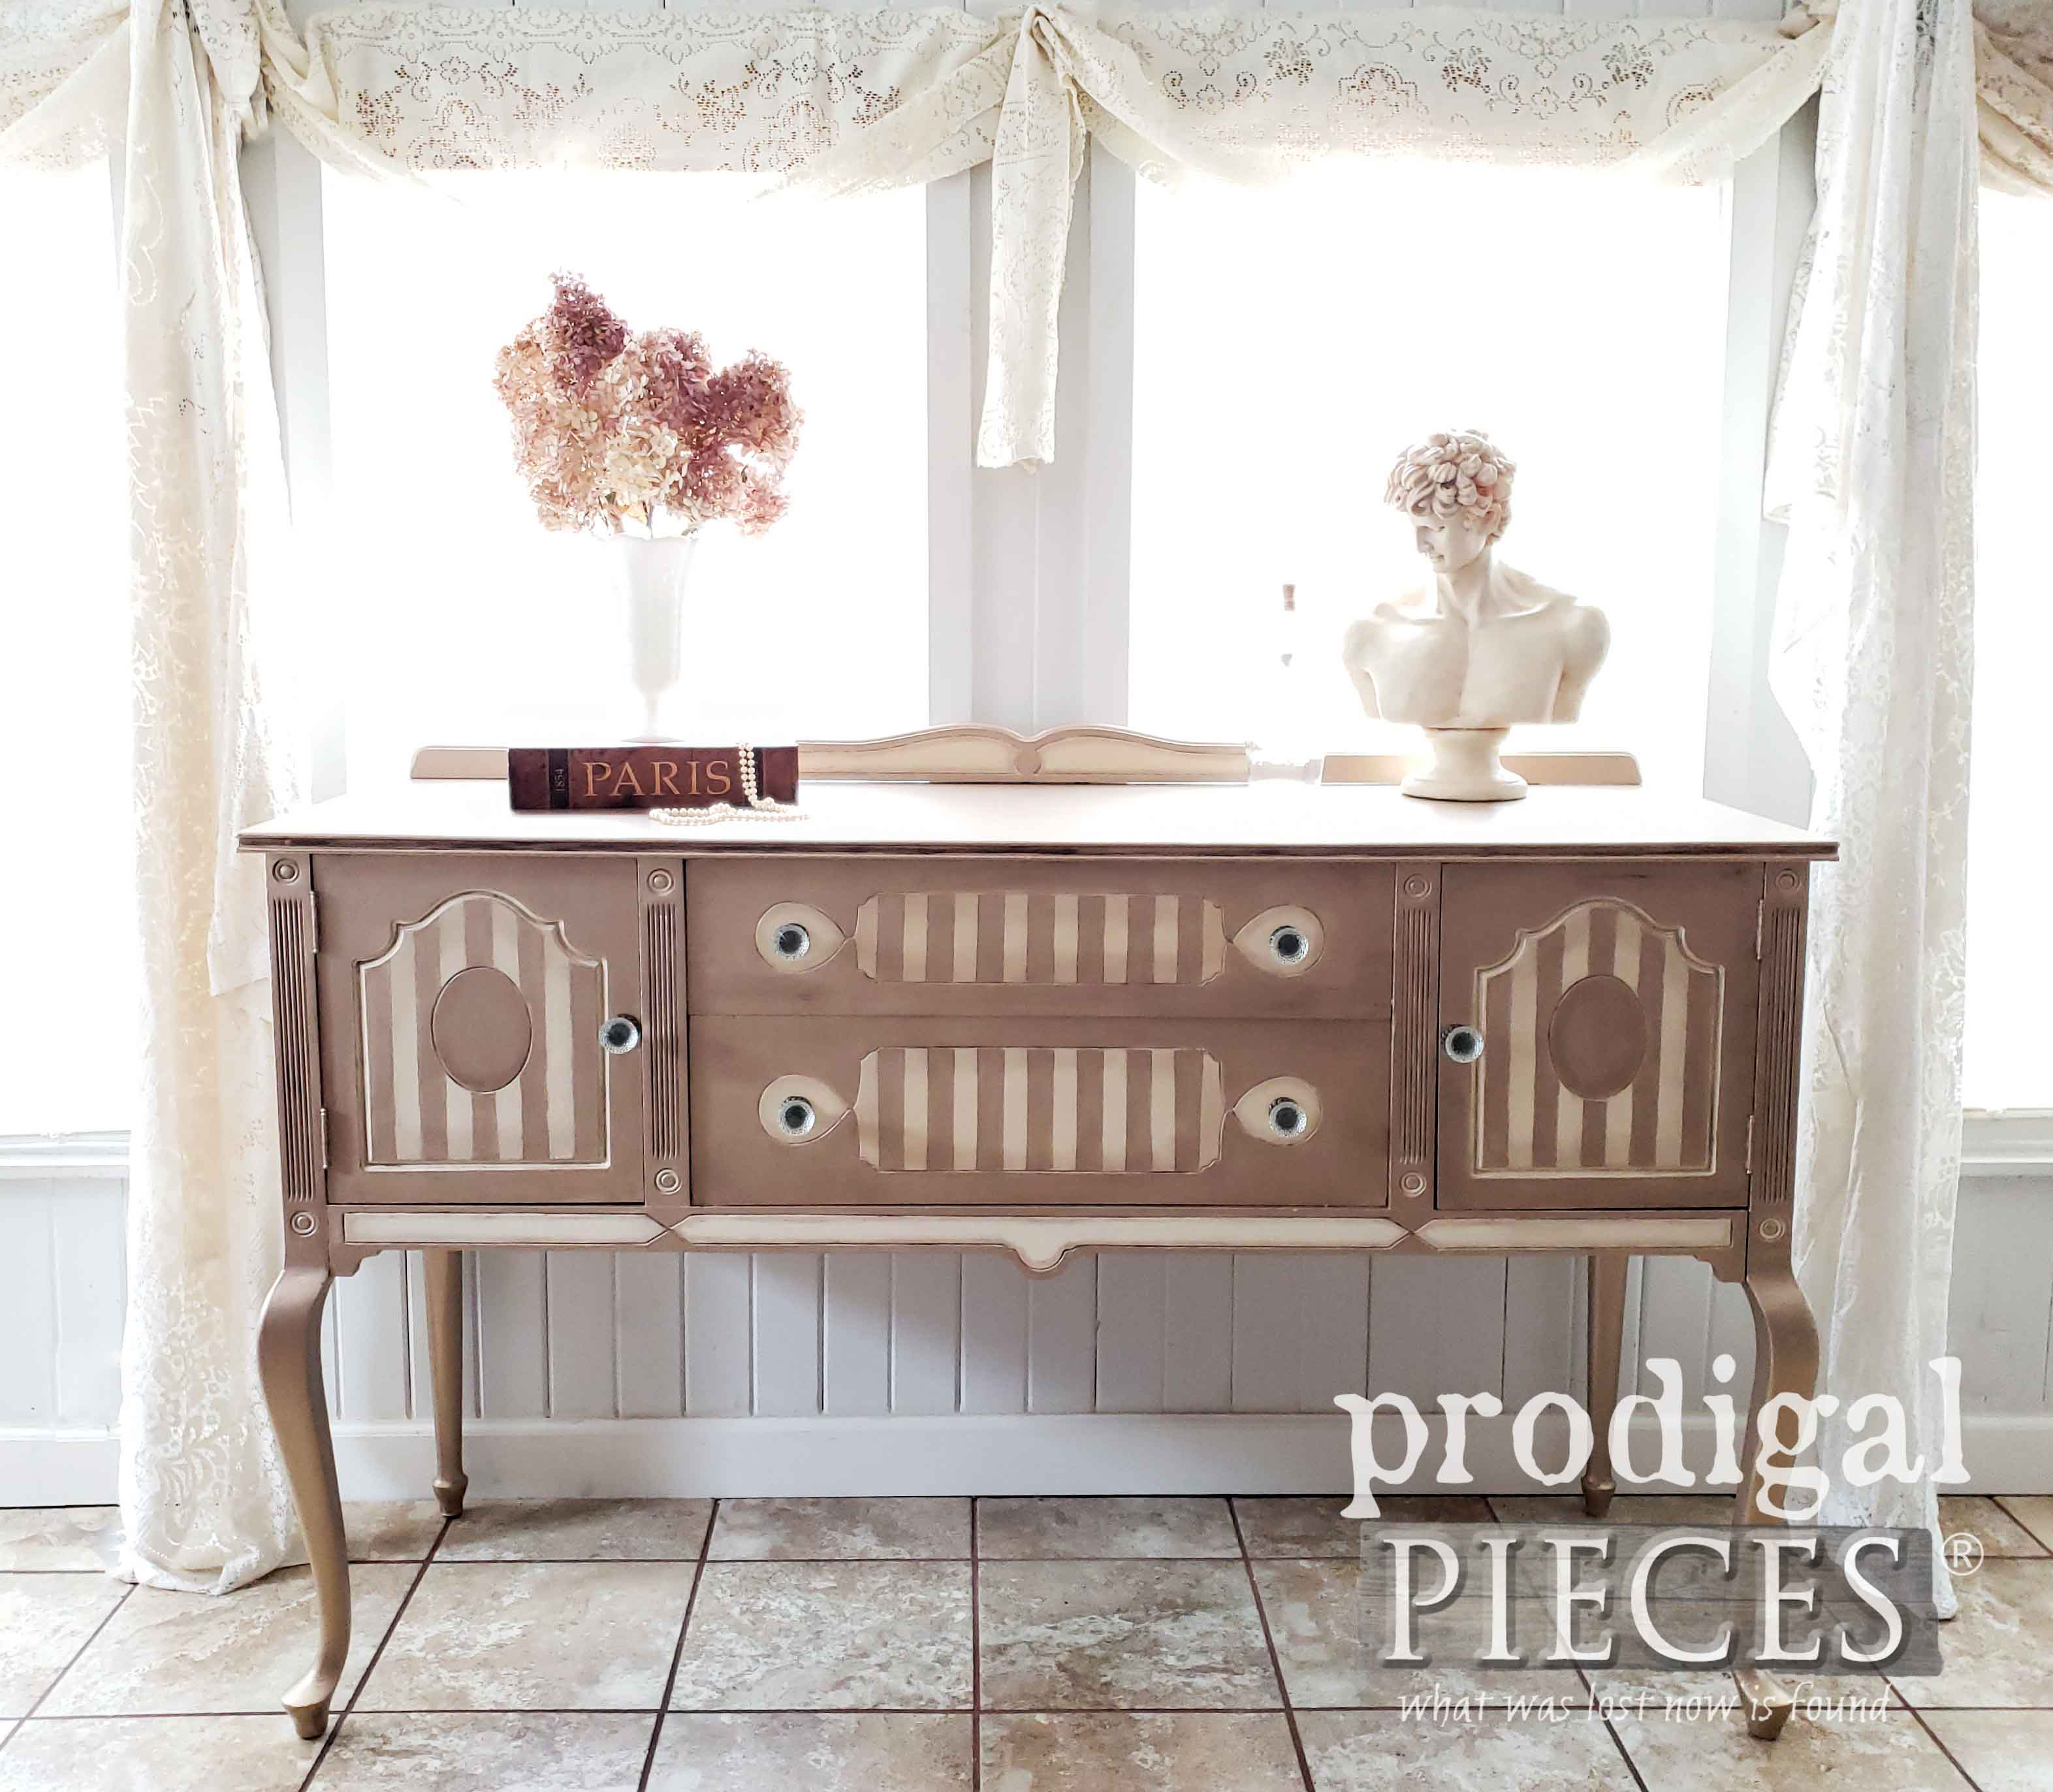 Metallic Antique Buffet with French Stripe and Queen Anne Legs by Larissa of Prodigal Pieces | prodigalpieces.com #prodigalpieces #furniture #diy #vintage #homedecor #home